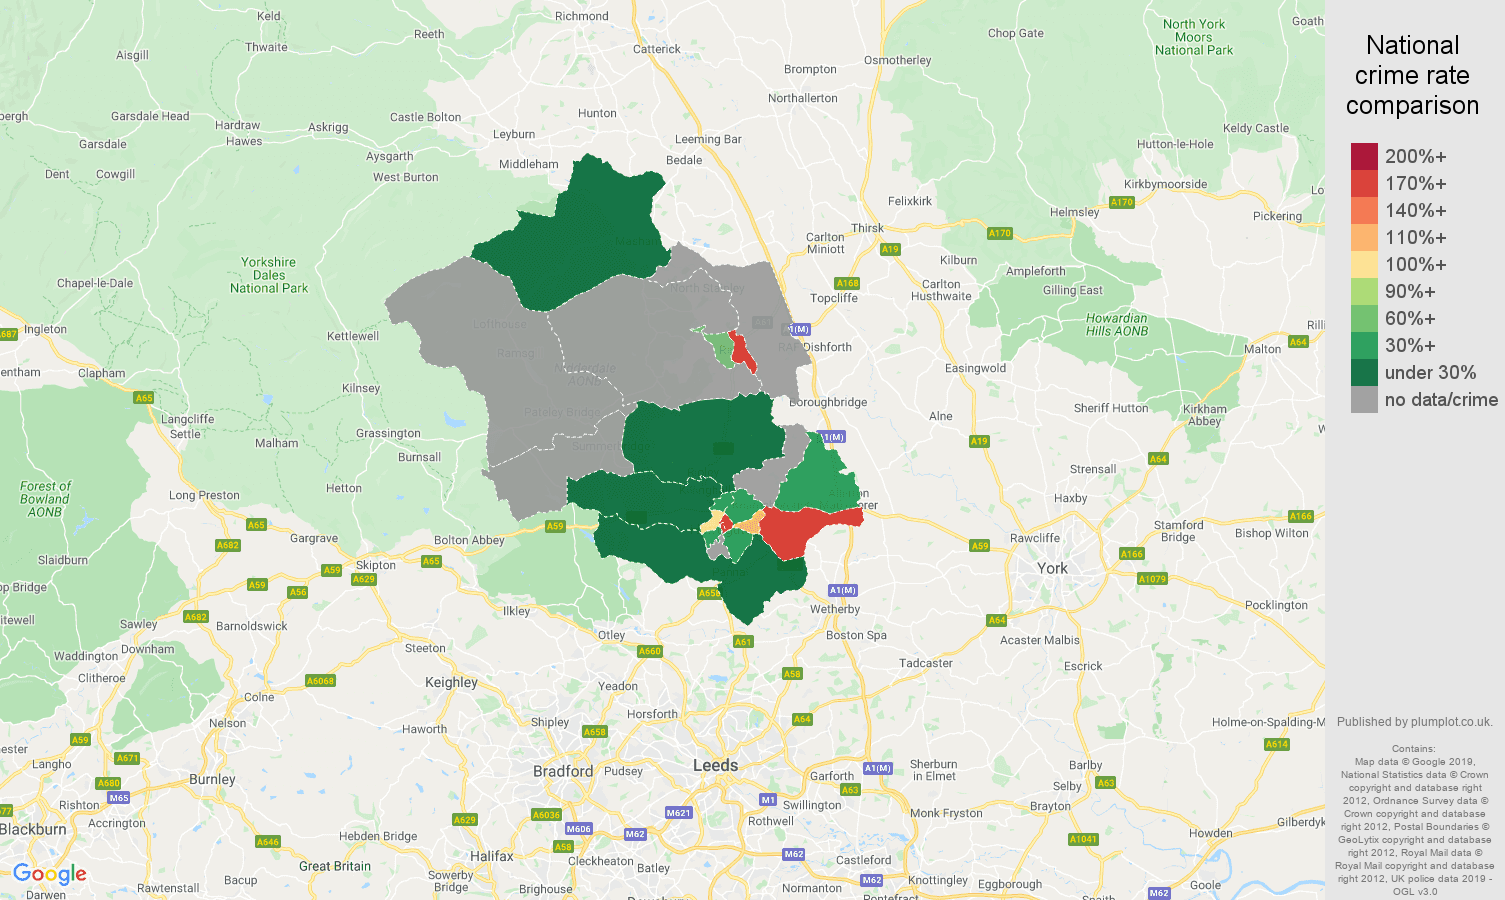 Harrogate shoplifting crime rate comparison map